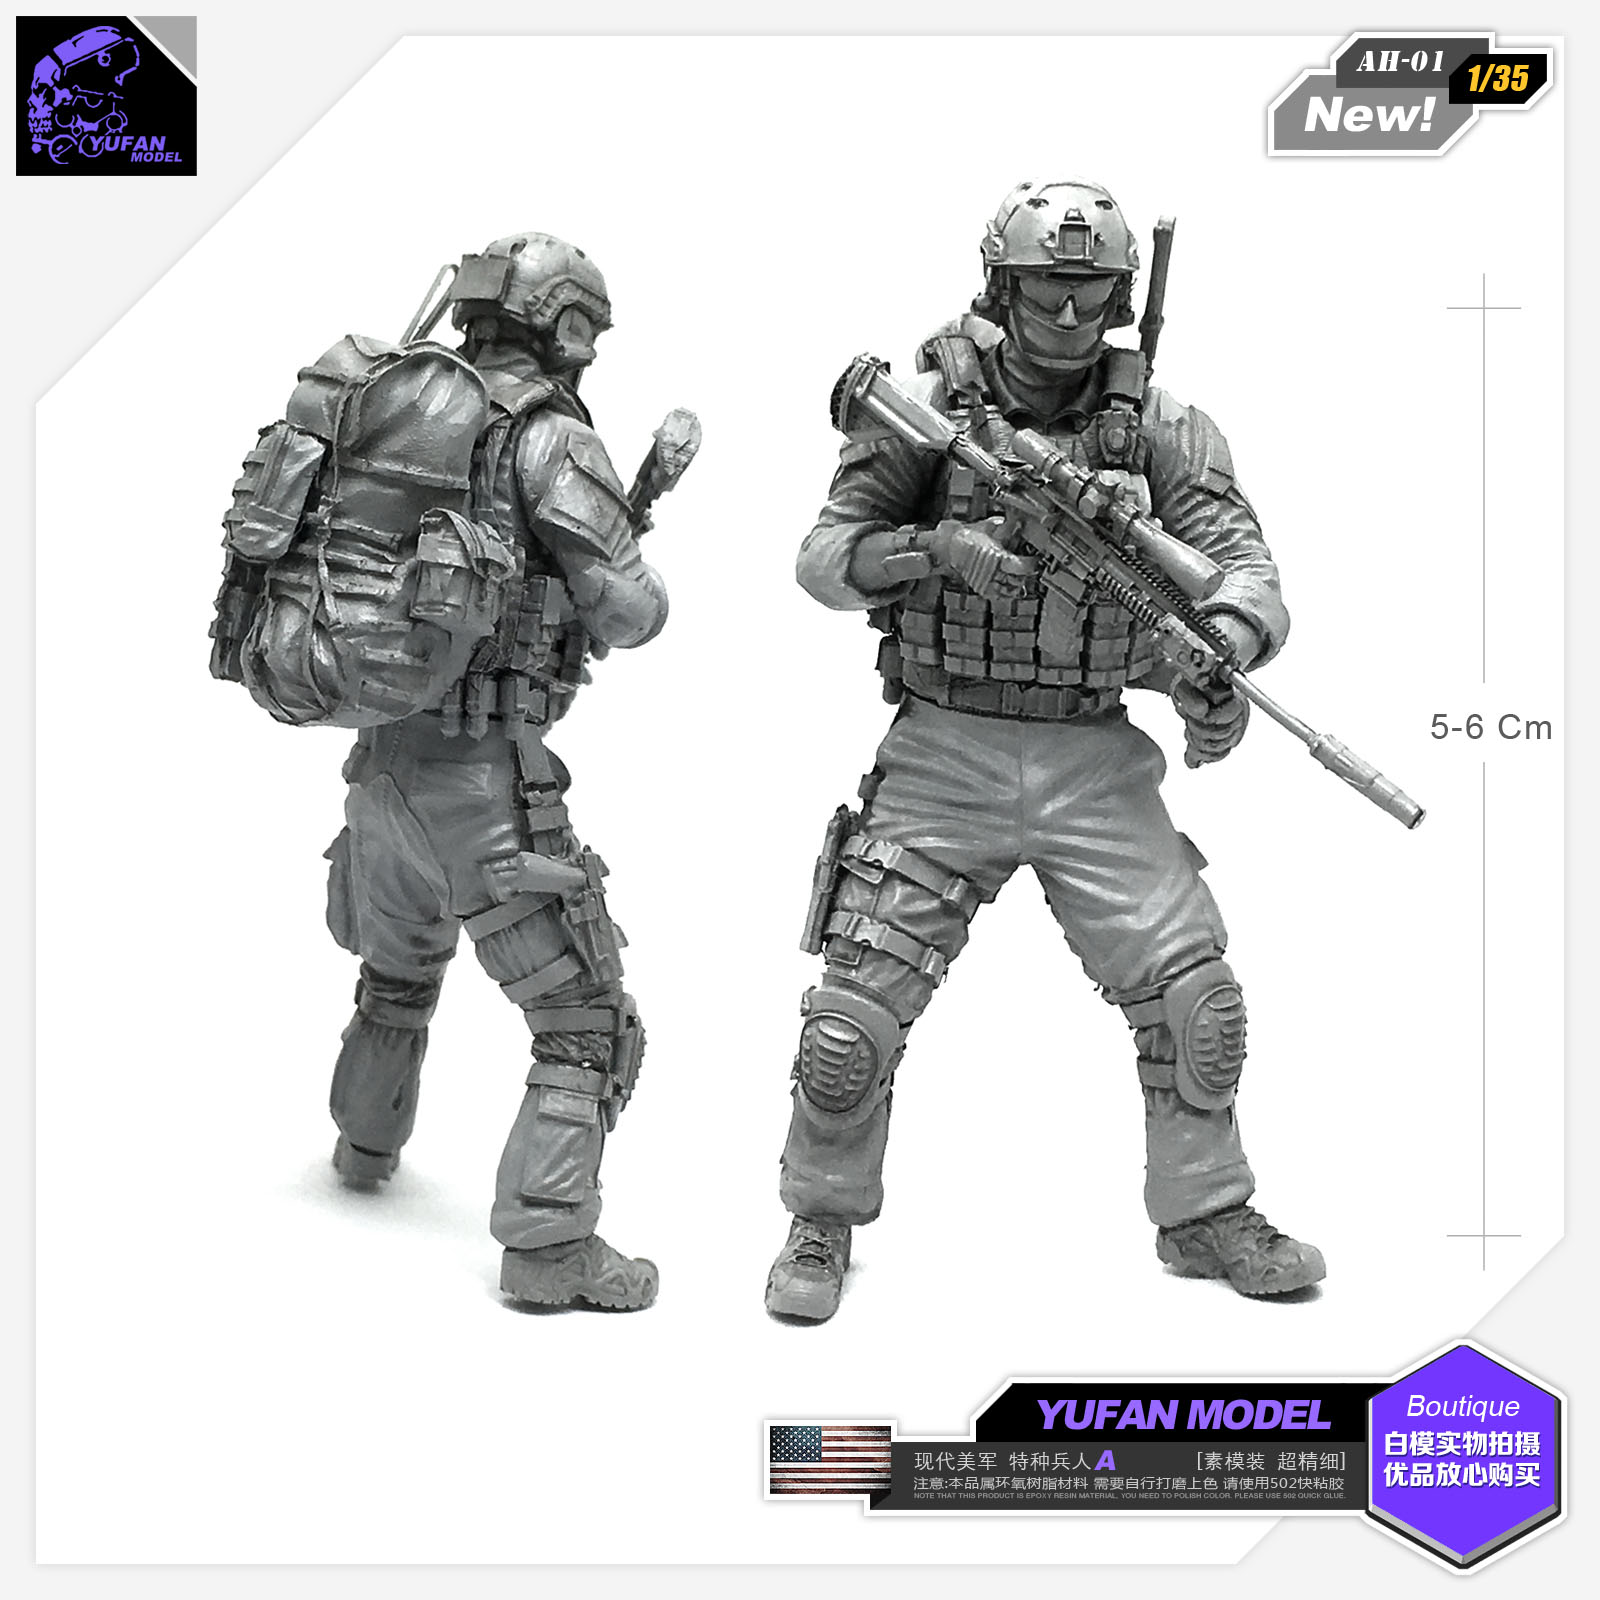 Yufan Model 1/35 Figure Kits Modern American Special Forces A Resin Soldier Military Model Unmounted AH-01